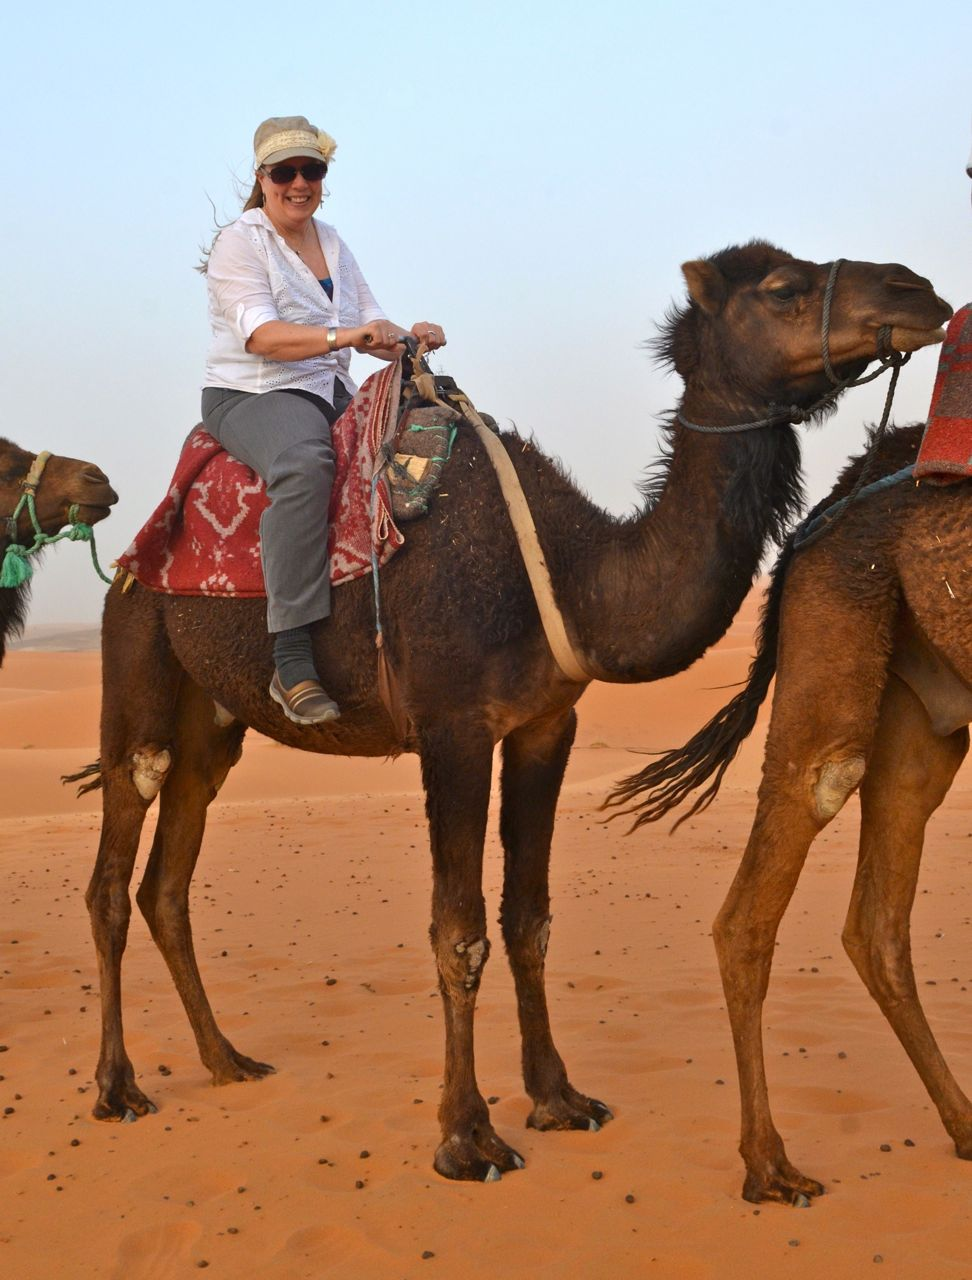 Camel Ride in Morocco